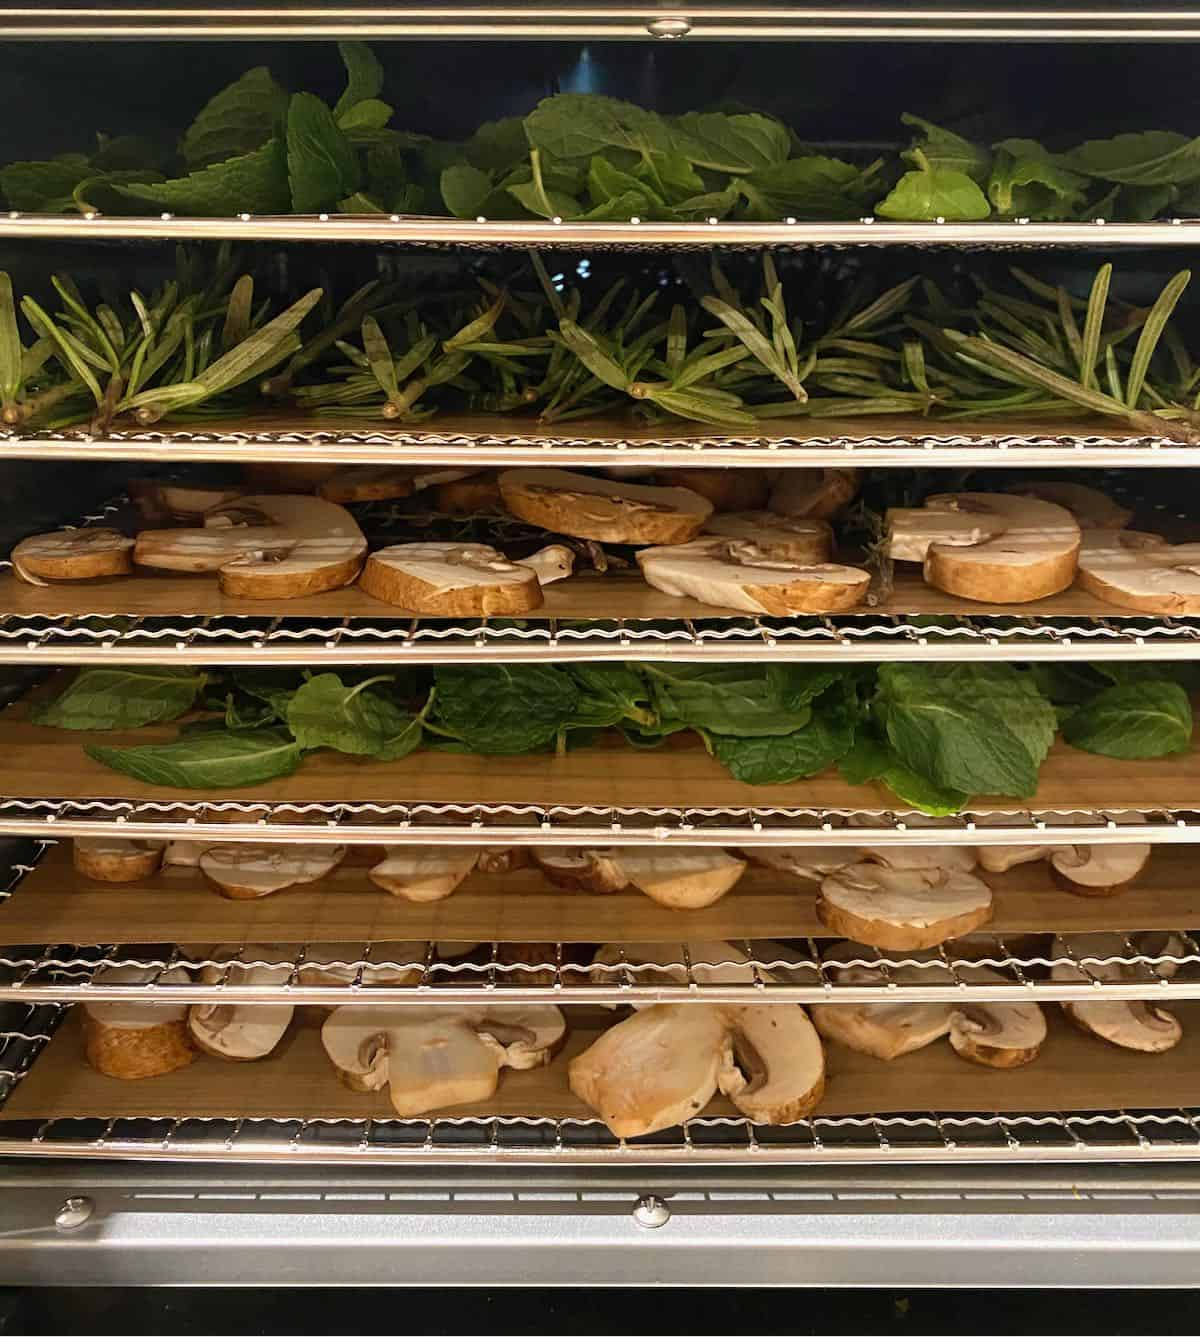 Herbs and mushroom slices in a dehydrator